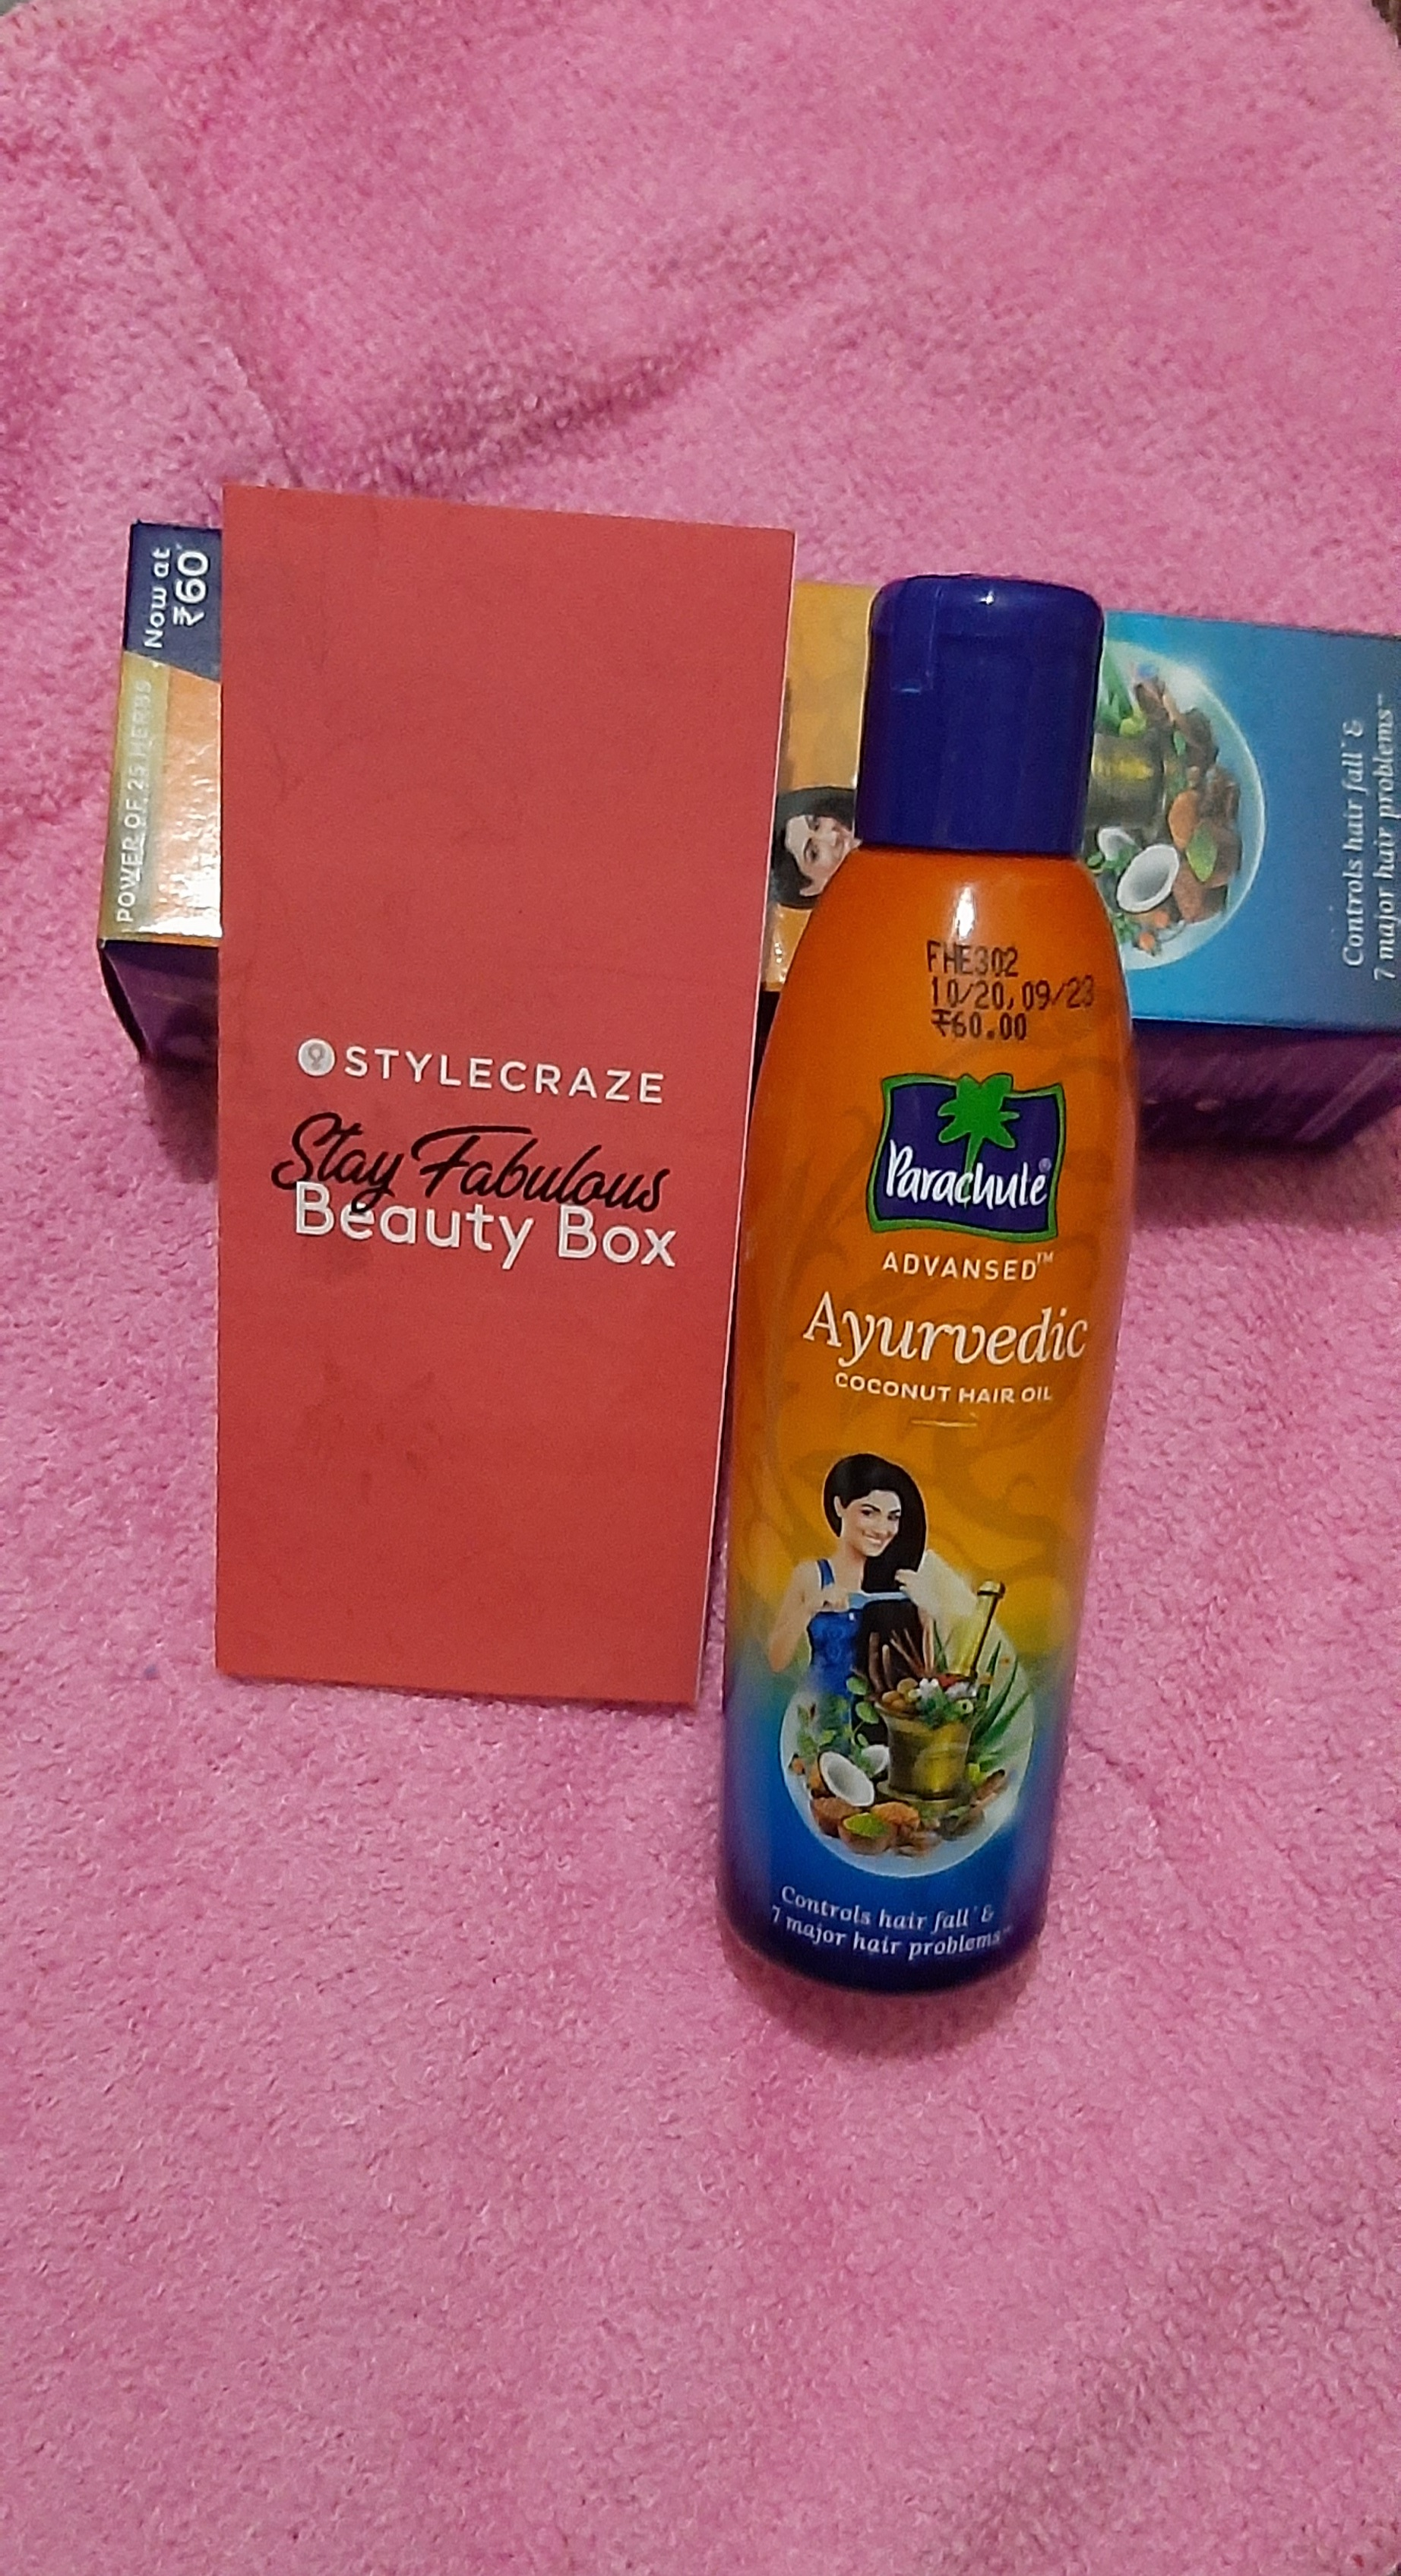 Parachute Advansed Ayurvedic Coconut Hair Oil-Works Well and makes hair healthy and strong.-By siddiqa_shaikh-2